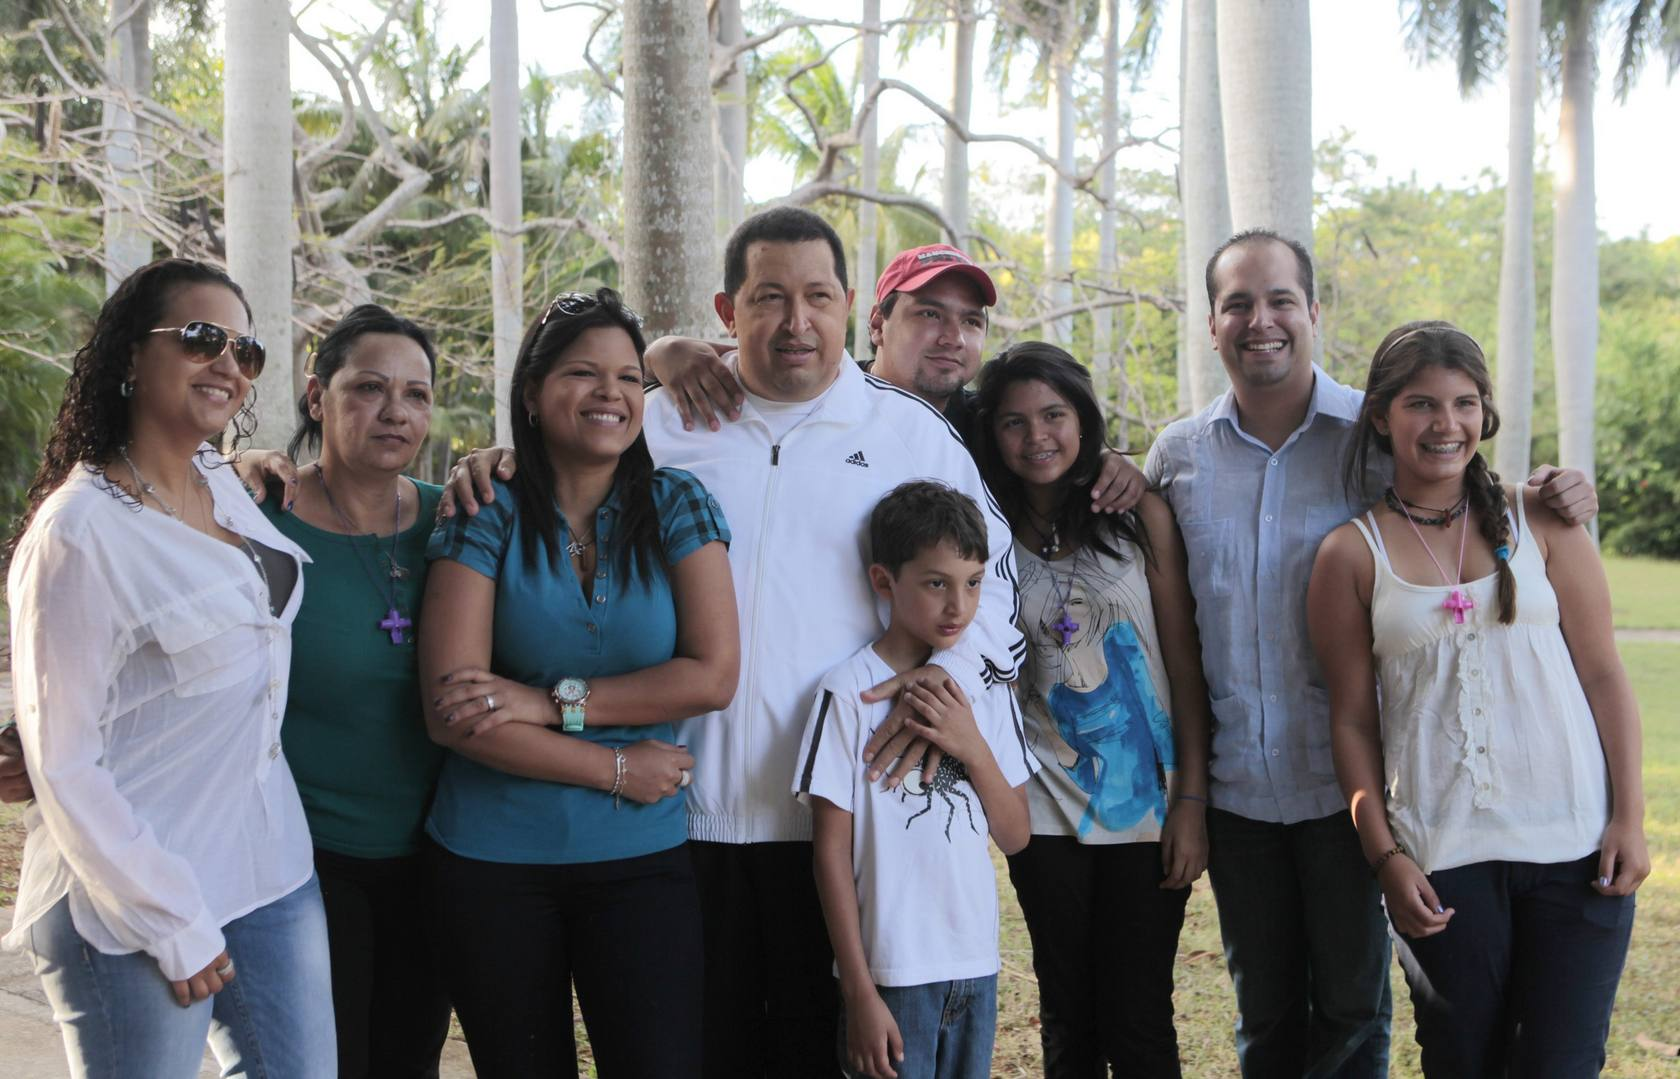 Handout picture taken on March 12, 2012, and released March 13 by the Venezuelan presidential press office showing Venezuelan President Hugo Chavez (C) surrounded by his family during a stroll in Havana. Chavez, 57, had surgery two weeks ago in Havana of a second malignant tumor in the same area that in June 2011 extracted the first, also in Cuba. The president announced that Venezuela will return this week. AFP PHOTO/PRESIDENCIA RESTRICTED TO EDITORIAL USE-NO MARKETING-NO ADVERTISING CAMPAIGNS-MANDATORY CREDIT 'AFP PHOTO/PRESIDENCIA' -DISTRIBUTED AS A SERVICE TO CLIENTS